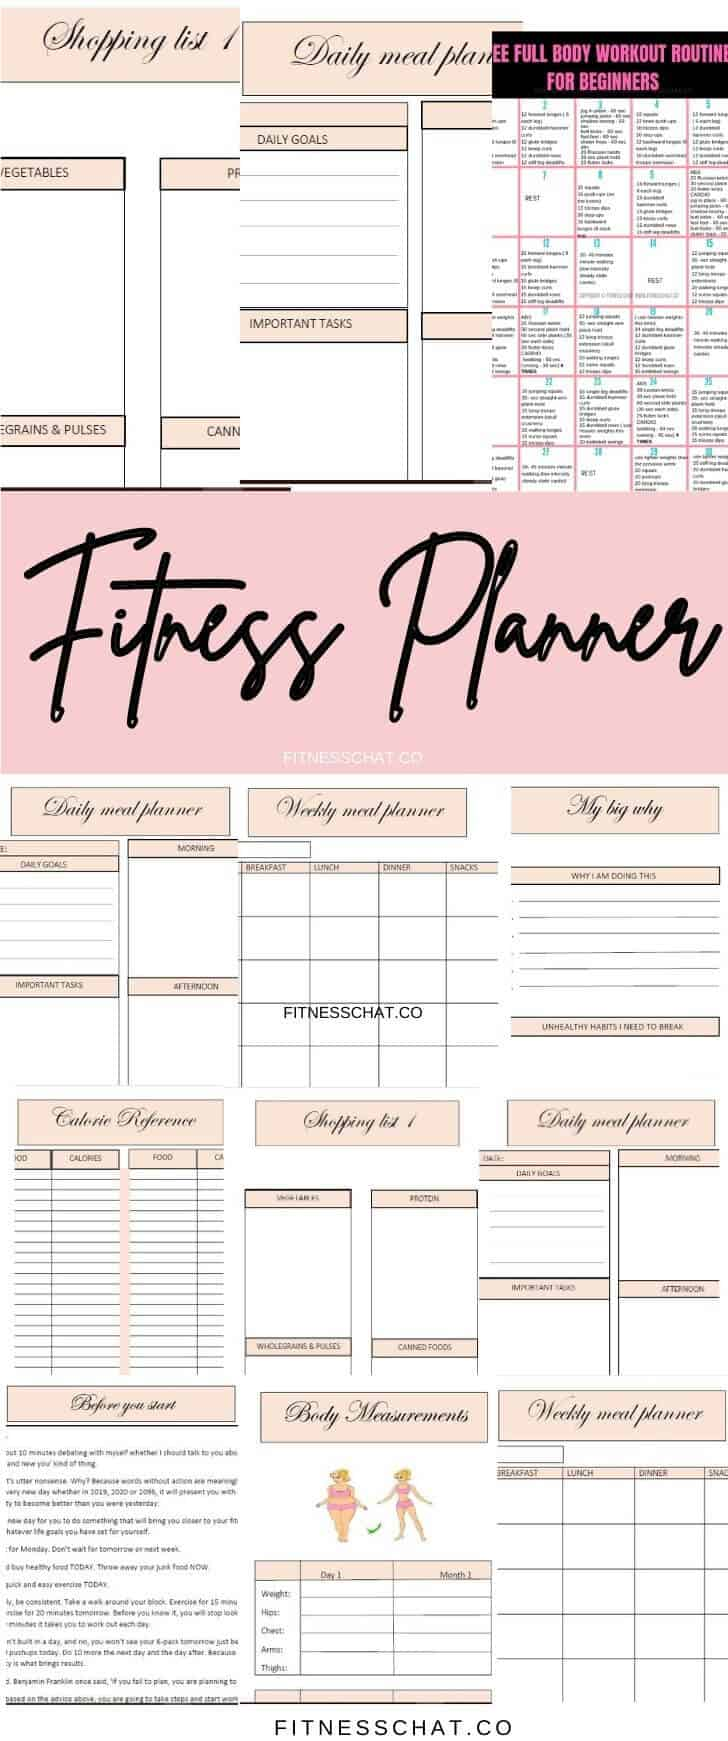 fitness planner printable. Weight loss journal ideas diy